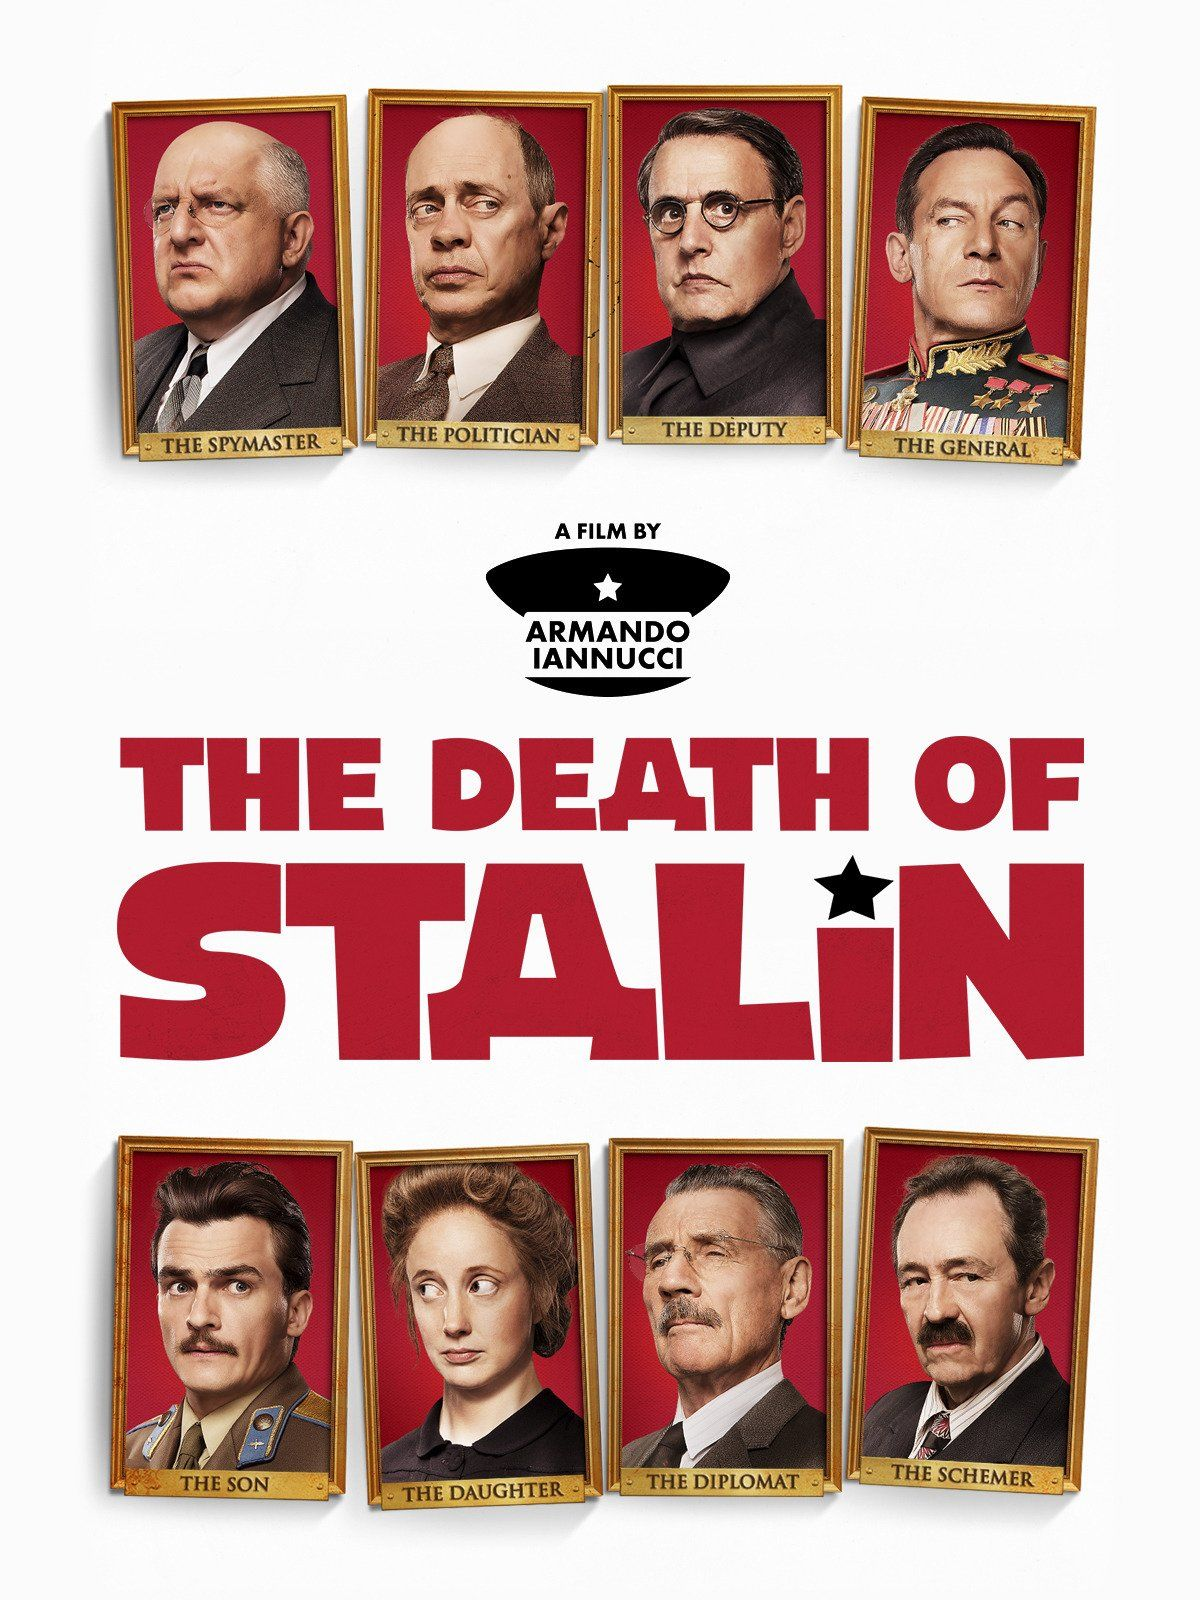 How true is 'The Death Of Stalin'? Here's what its writer and director told us